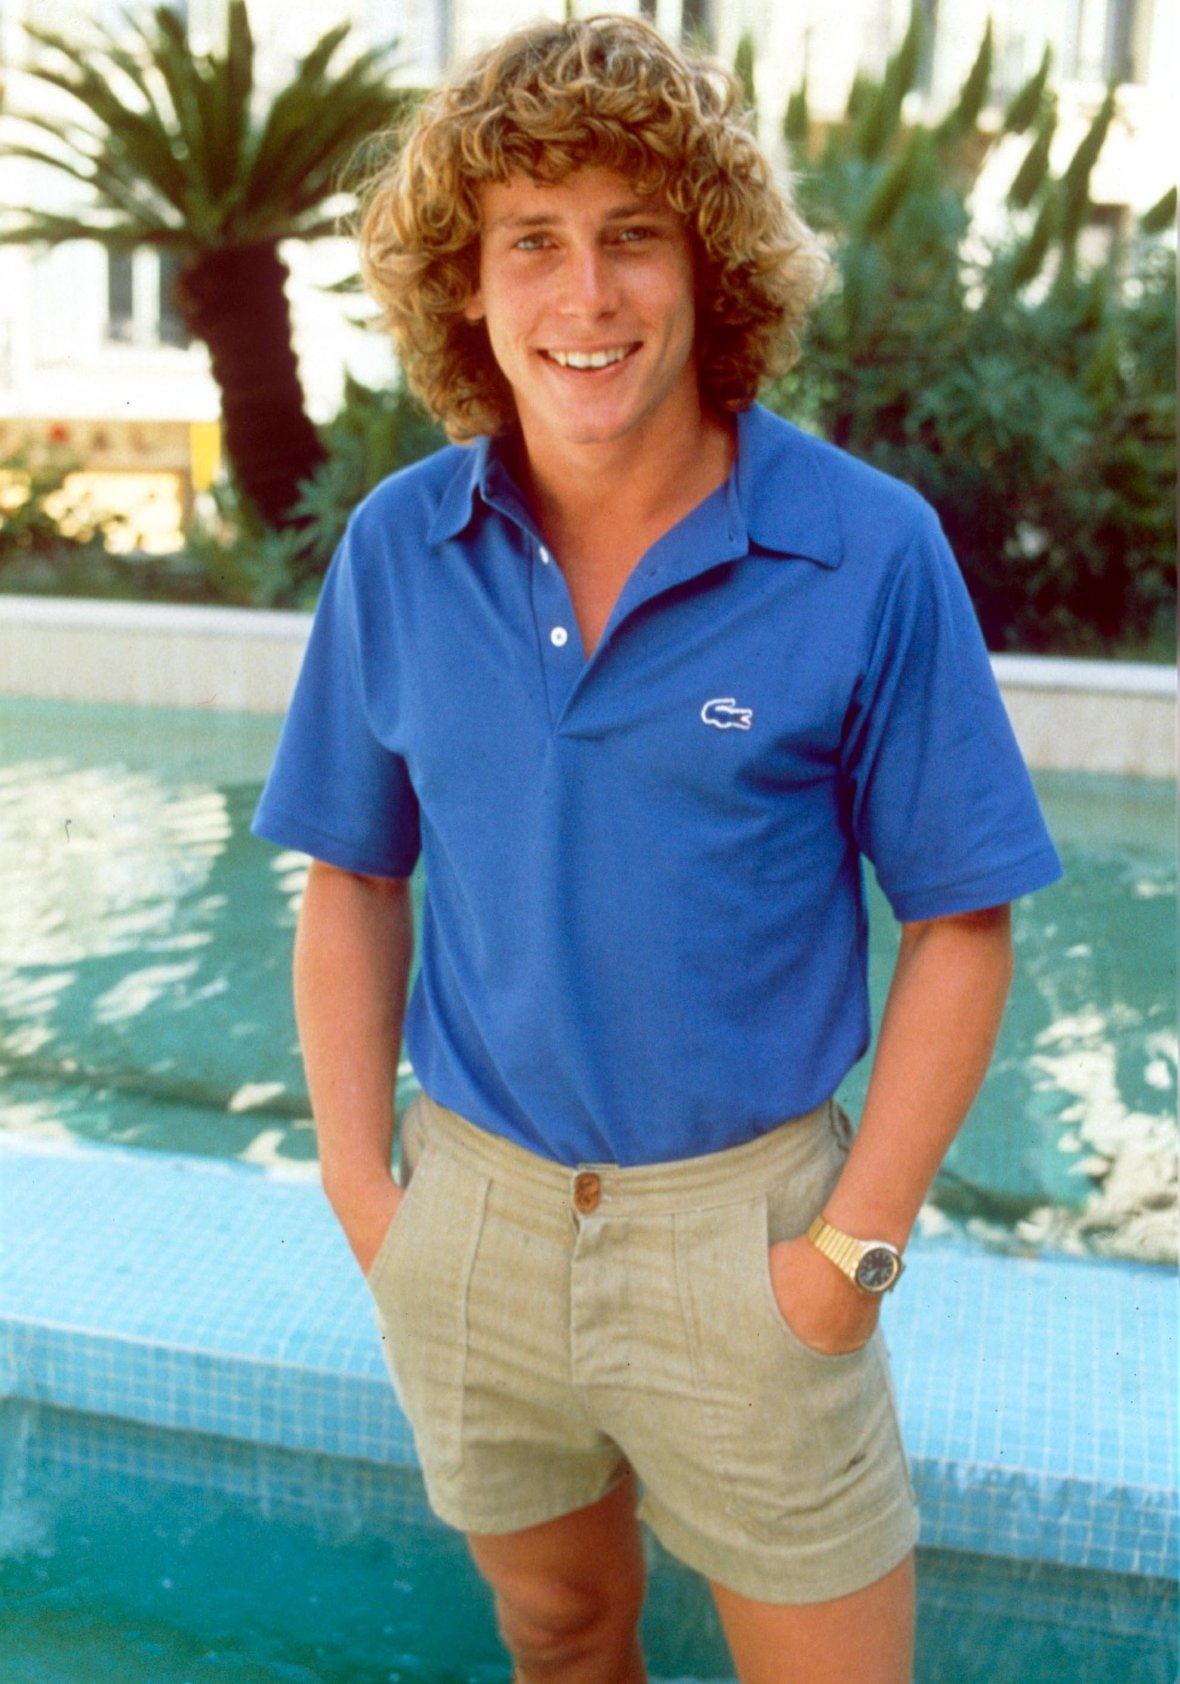 Former Teen Heartthrob Willie Aames